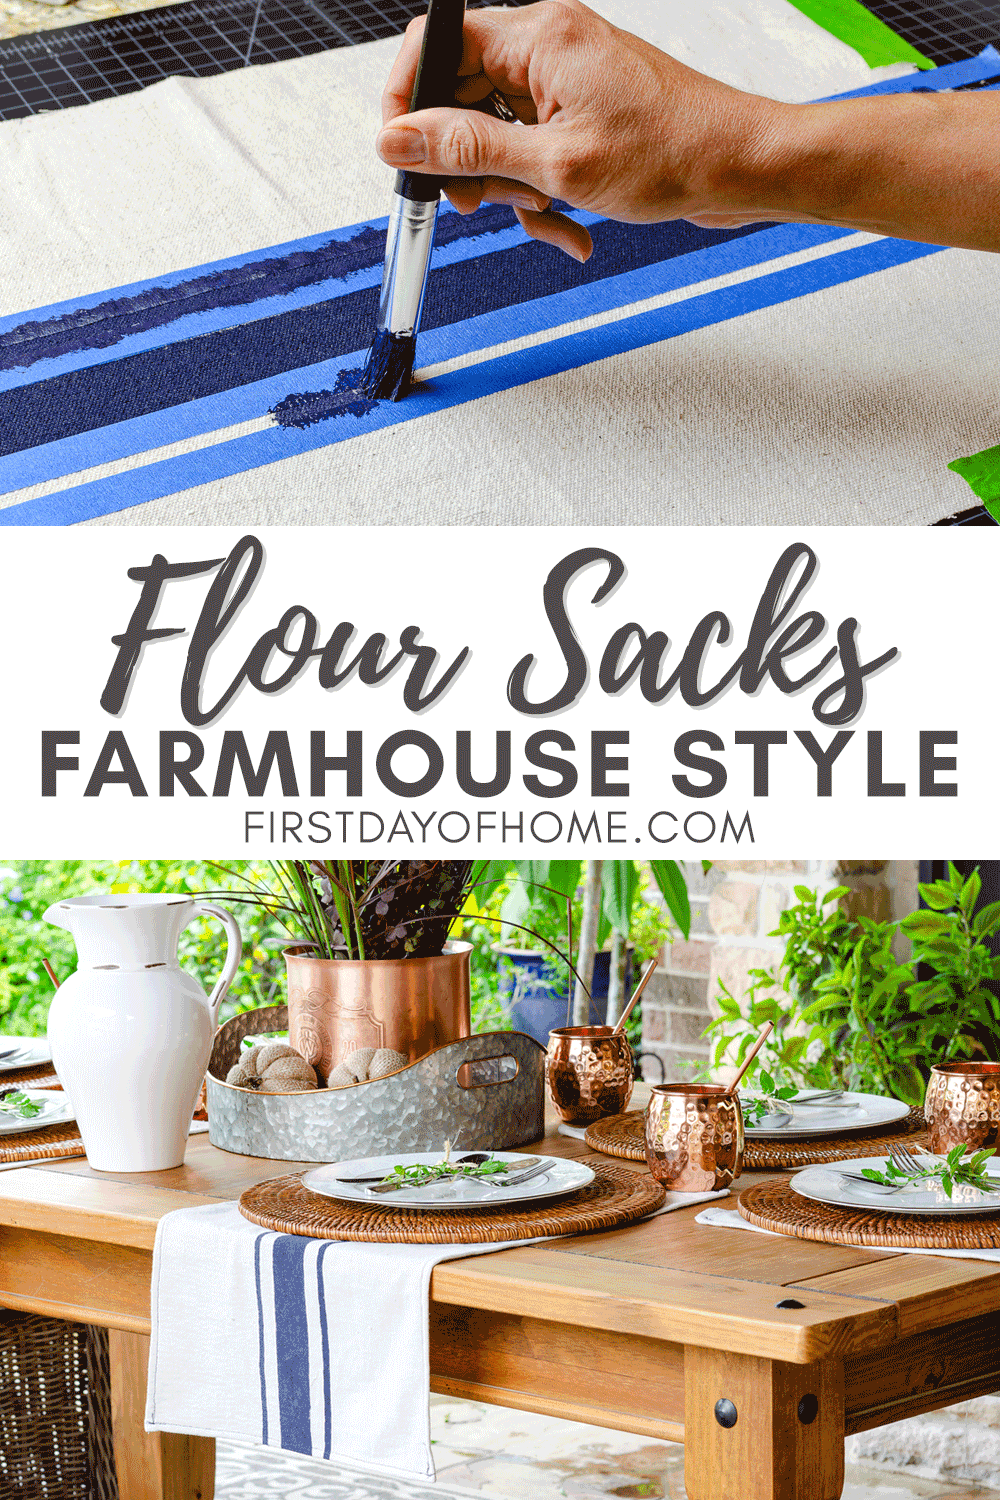 Farmhouse style flour sack dish towels using drop cloth and acrylic paints